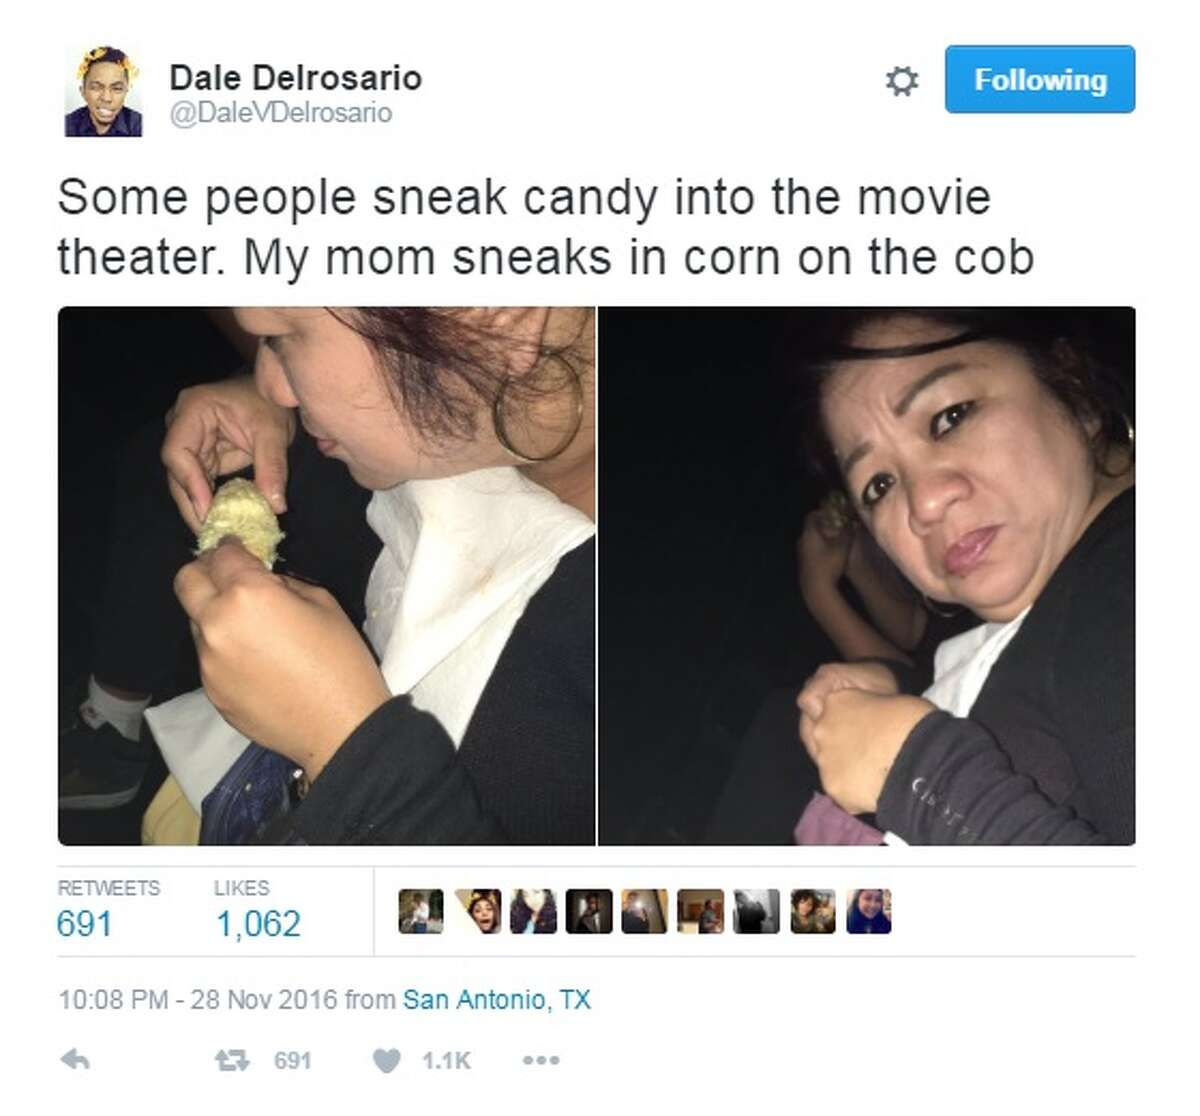 Dale Delrosario (@DaleVDelrosario) shared candid photos of his hungry mom on Twitter Thursday night.